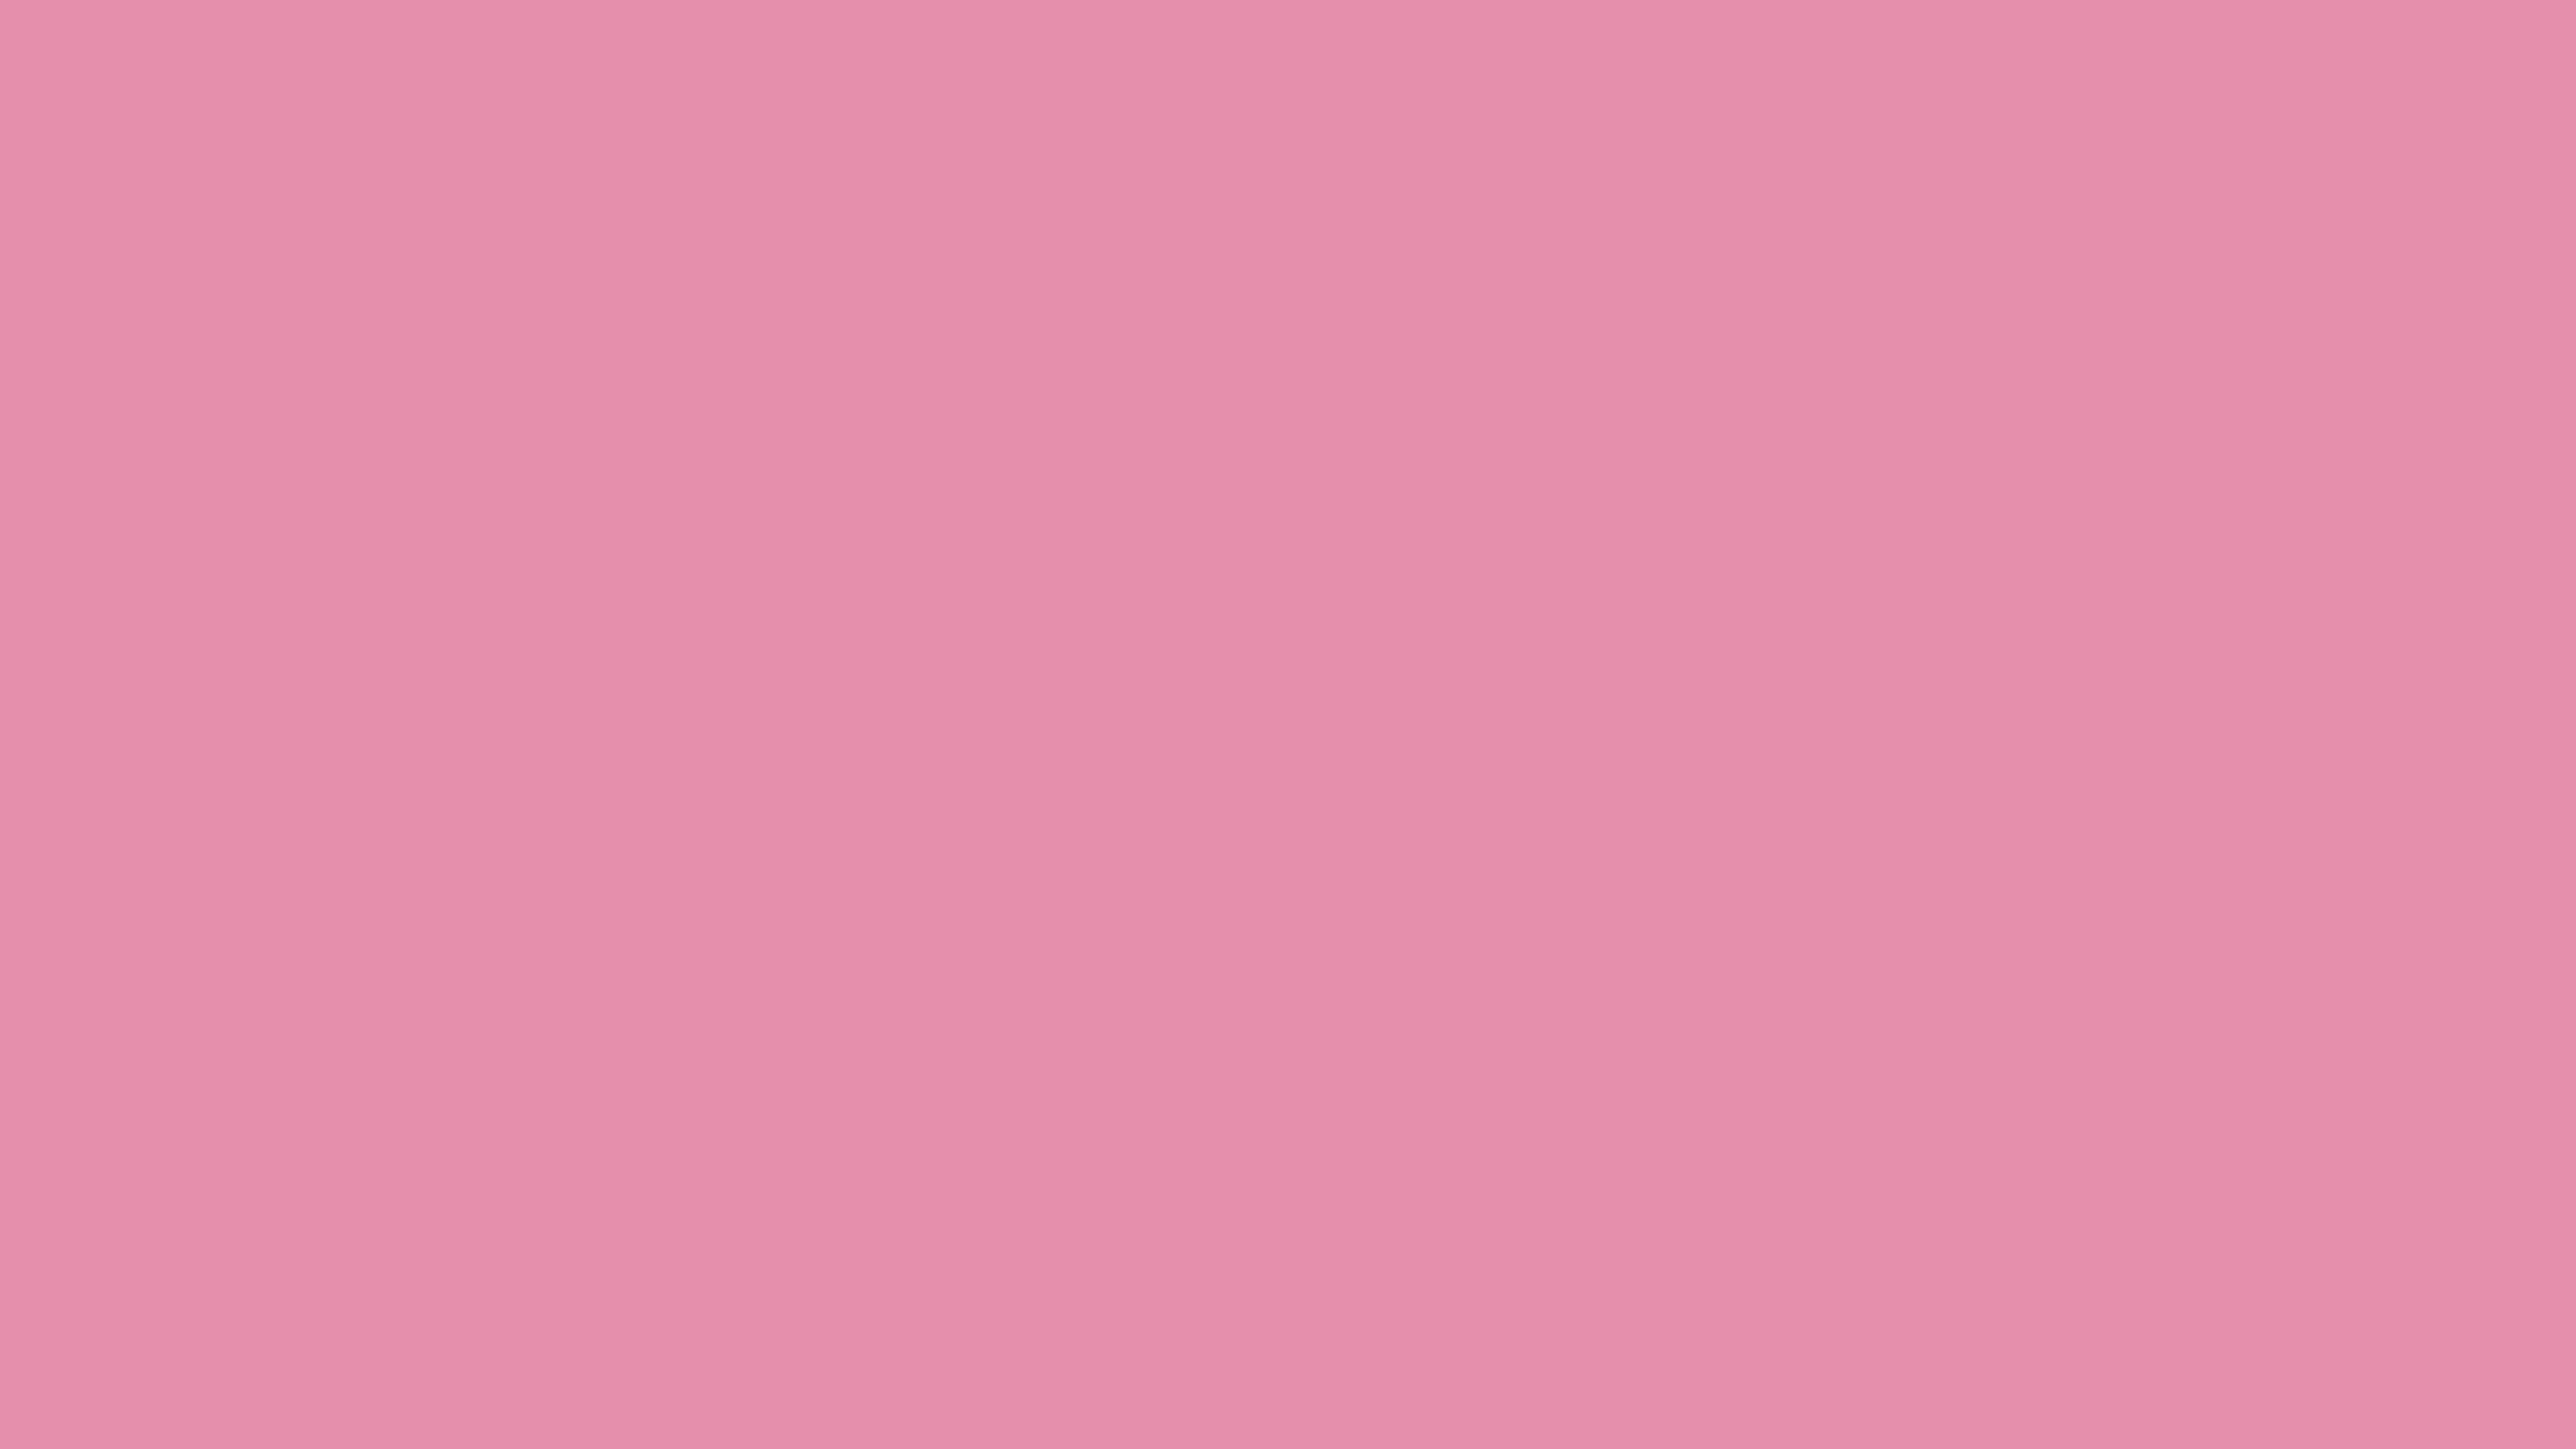 5120x2880 Charm Pink Solid Color Background